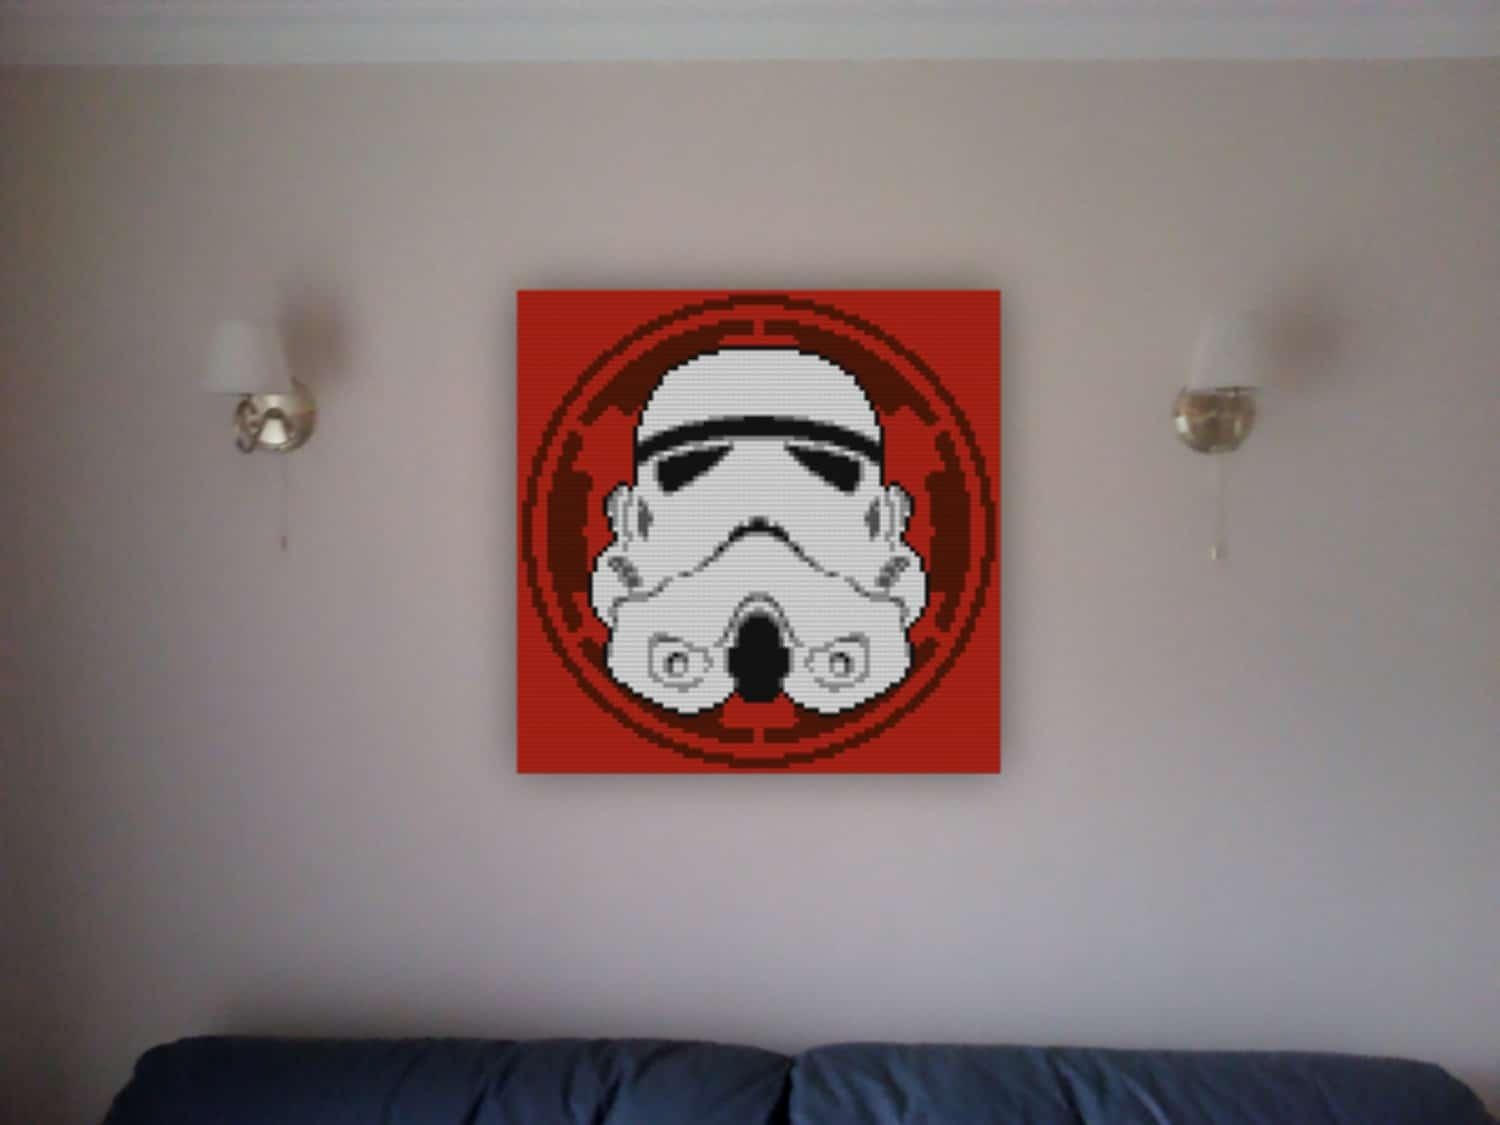 Decorative Star Wars Wall Lego Mosaics For Sci Fi Geeks Within Lego Star Wars Wall Art (View 13 of 20)